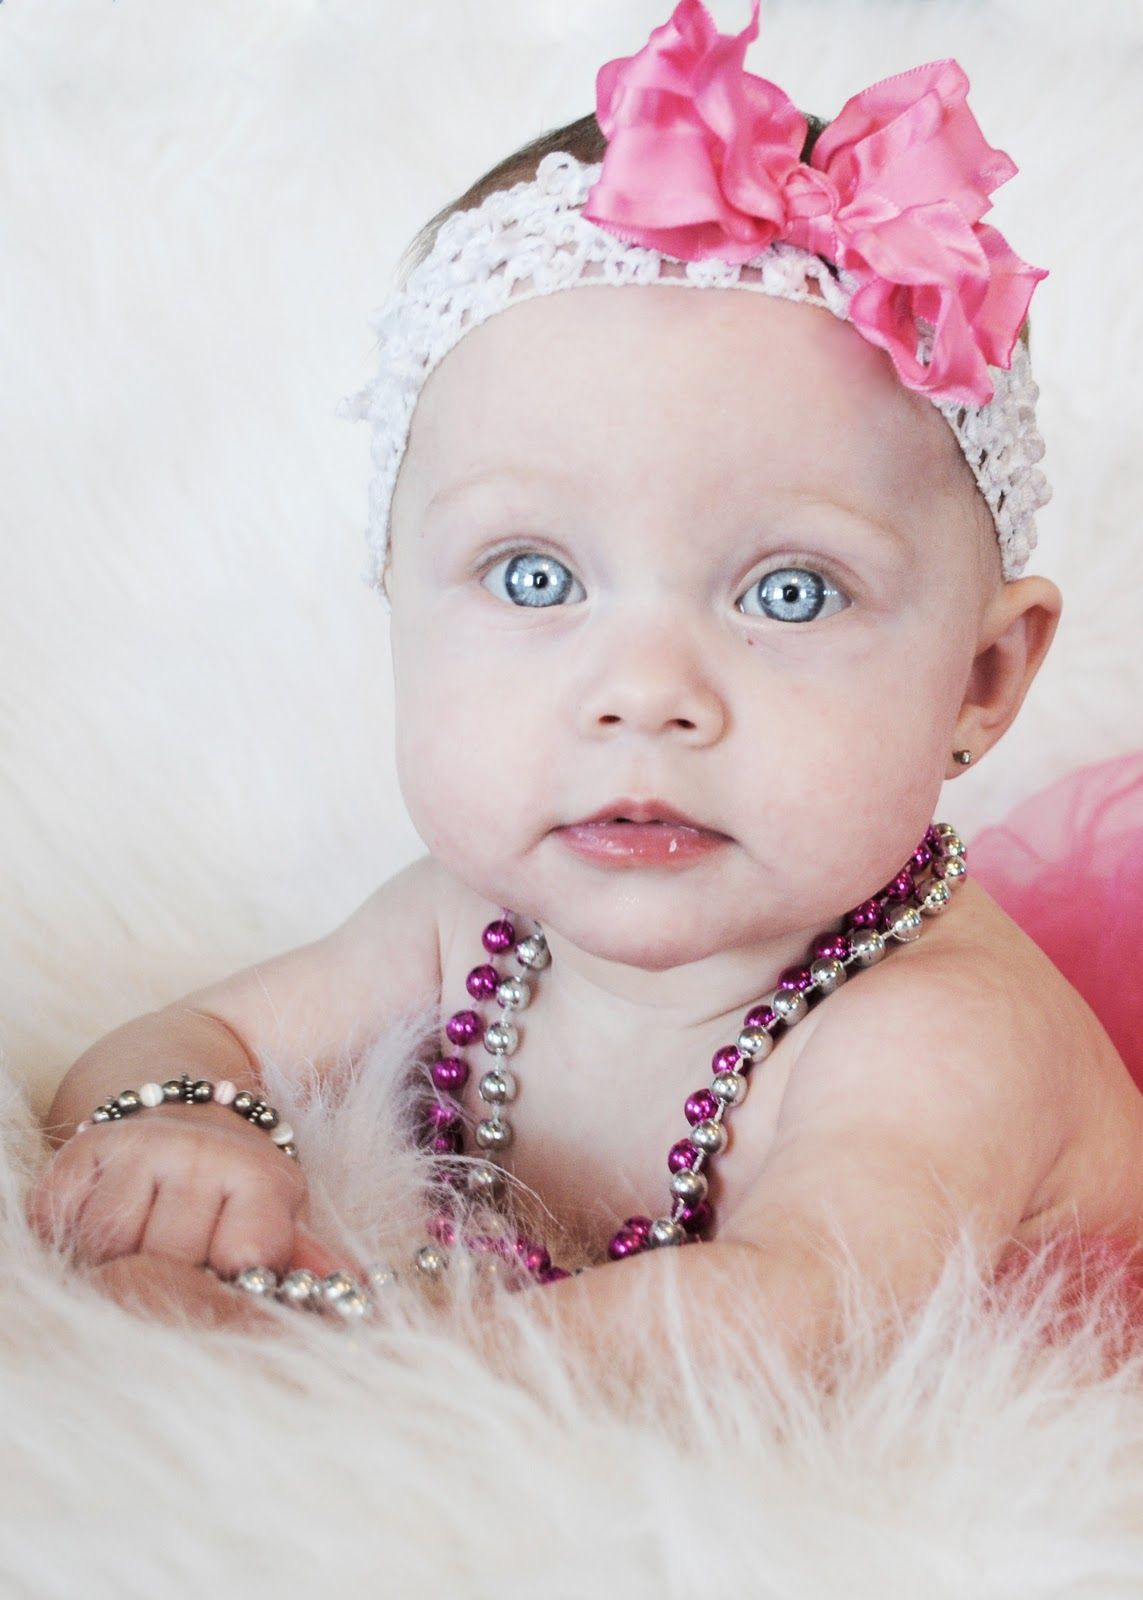 Newborn Babies With Blue Eyes Baby Blue Eyes Google Search Newborn Baby Photography